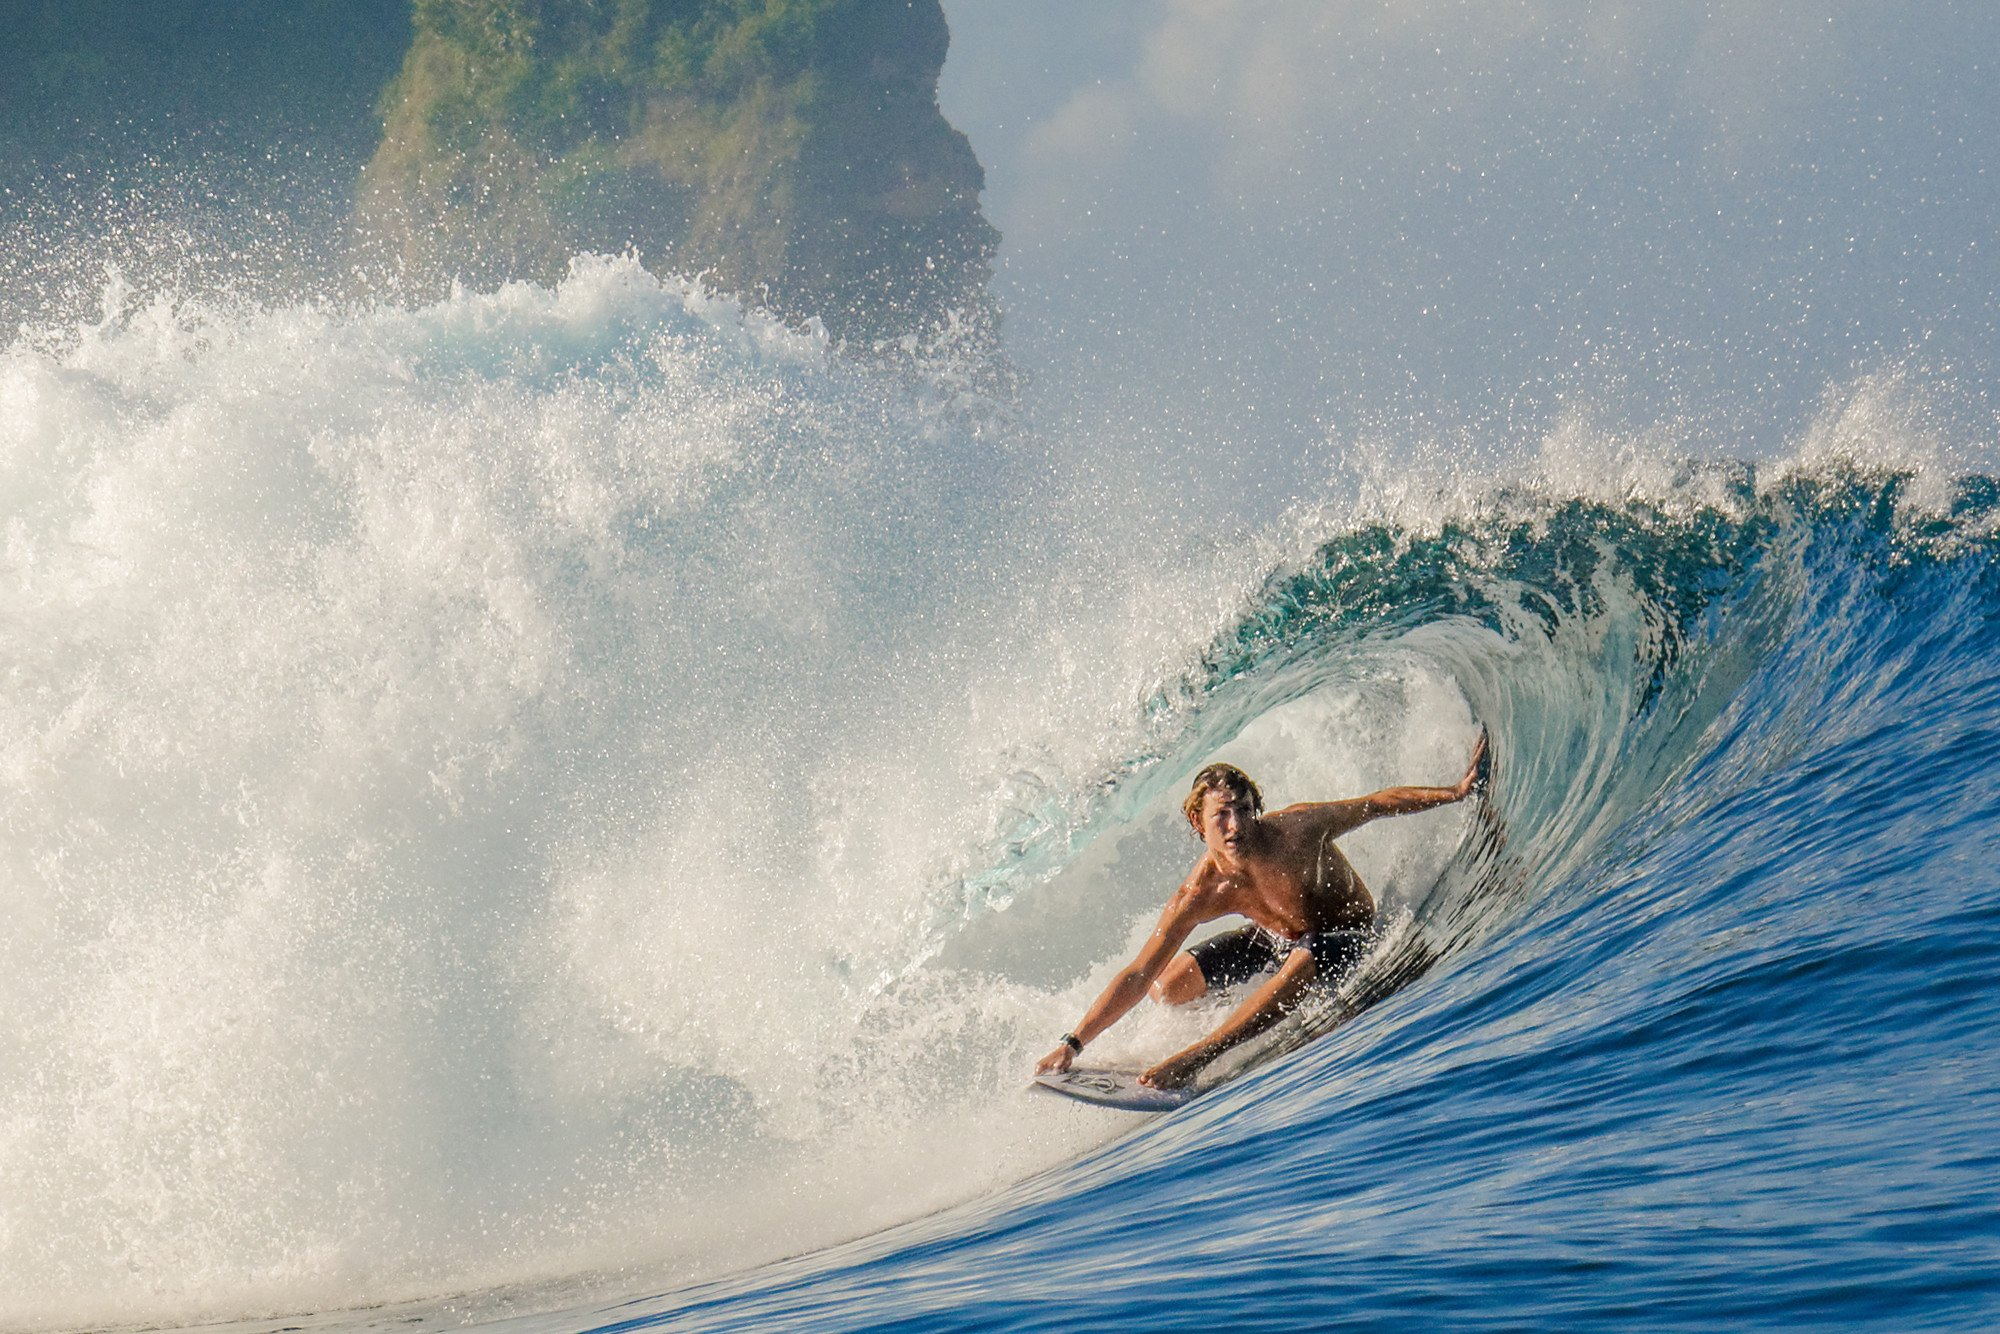 Barreling in Occy's left at Nihiwatu, Sumba -